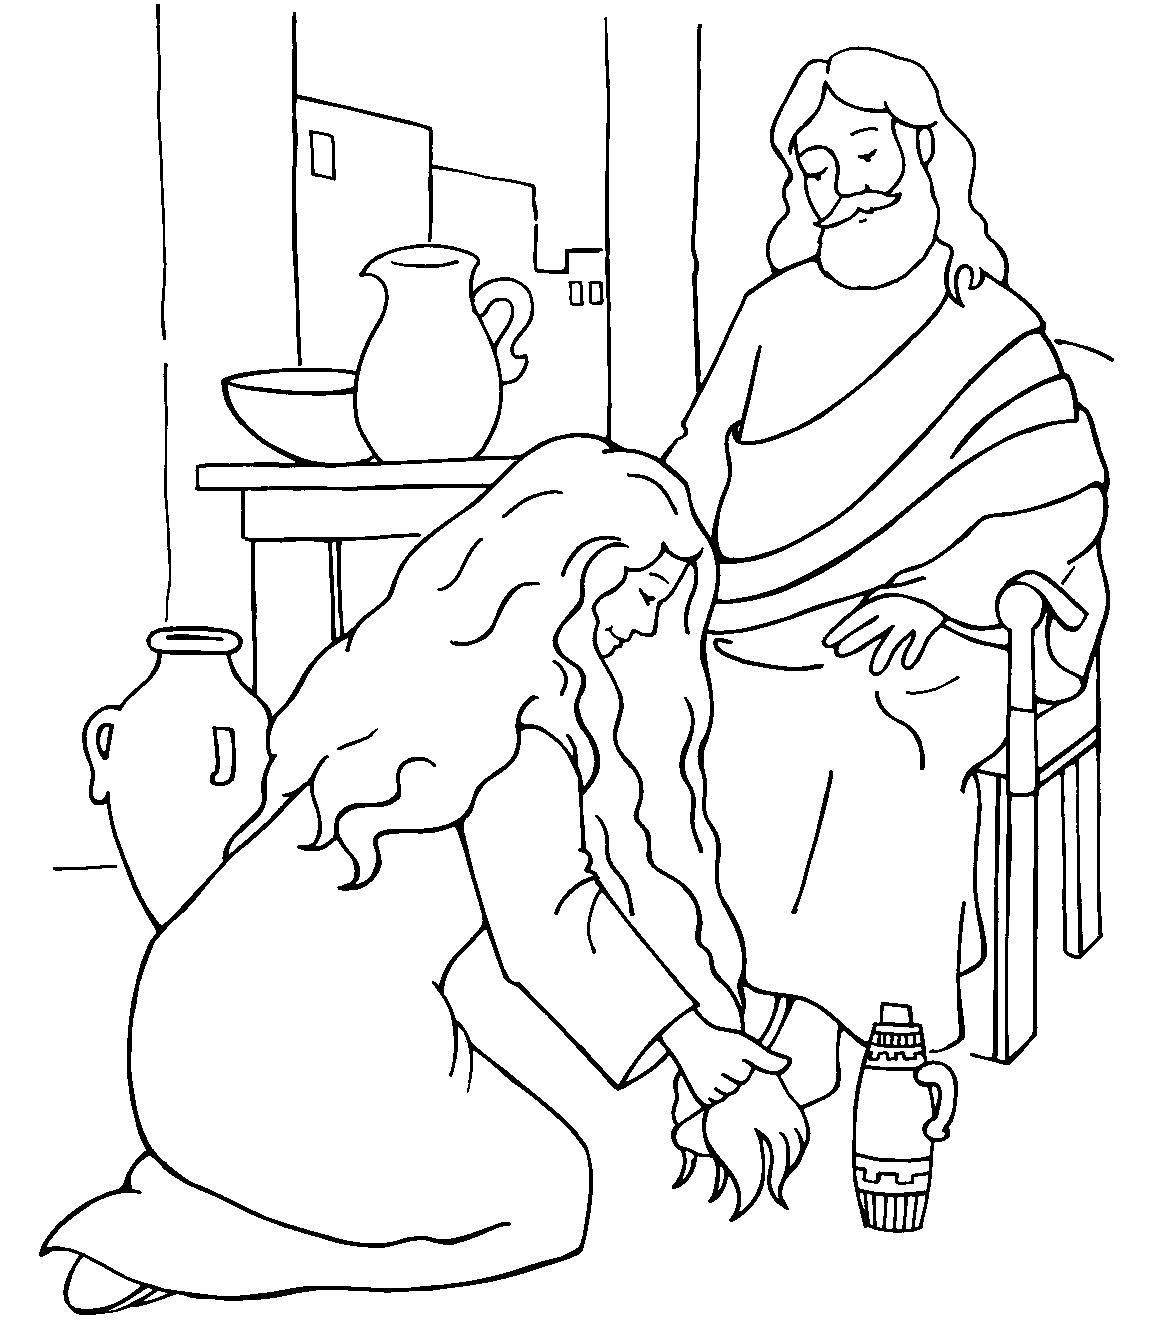 Mary And Jesus Coloring Page Free Http Www Wallpaperartdesignhd Us Mary And Jesus Coloring P Jesus Coloring Pages Sunday School Coloring Pages Bible For Kids [ 1341 x 1161 Pixel ]